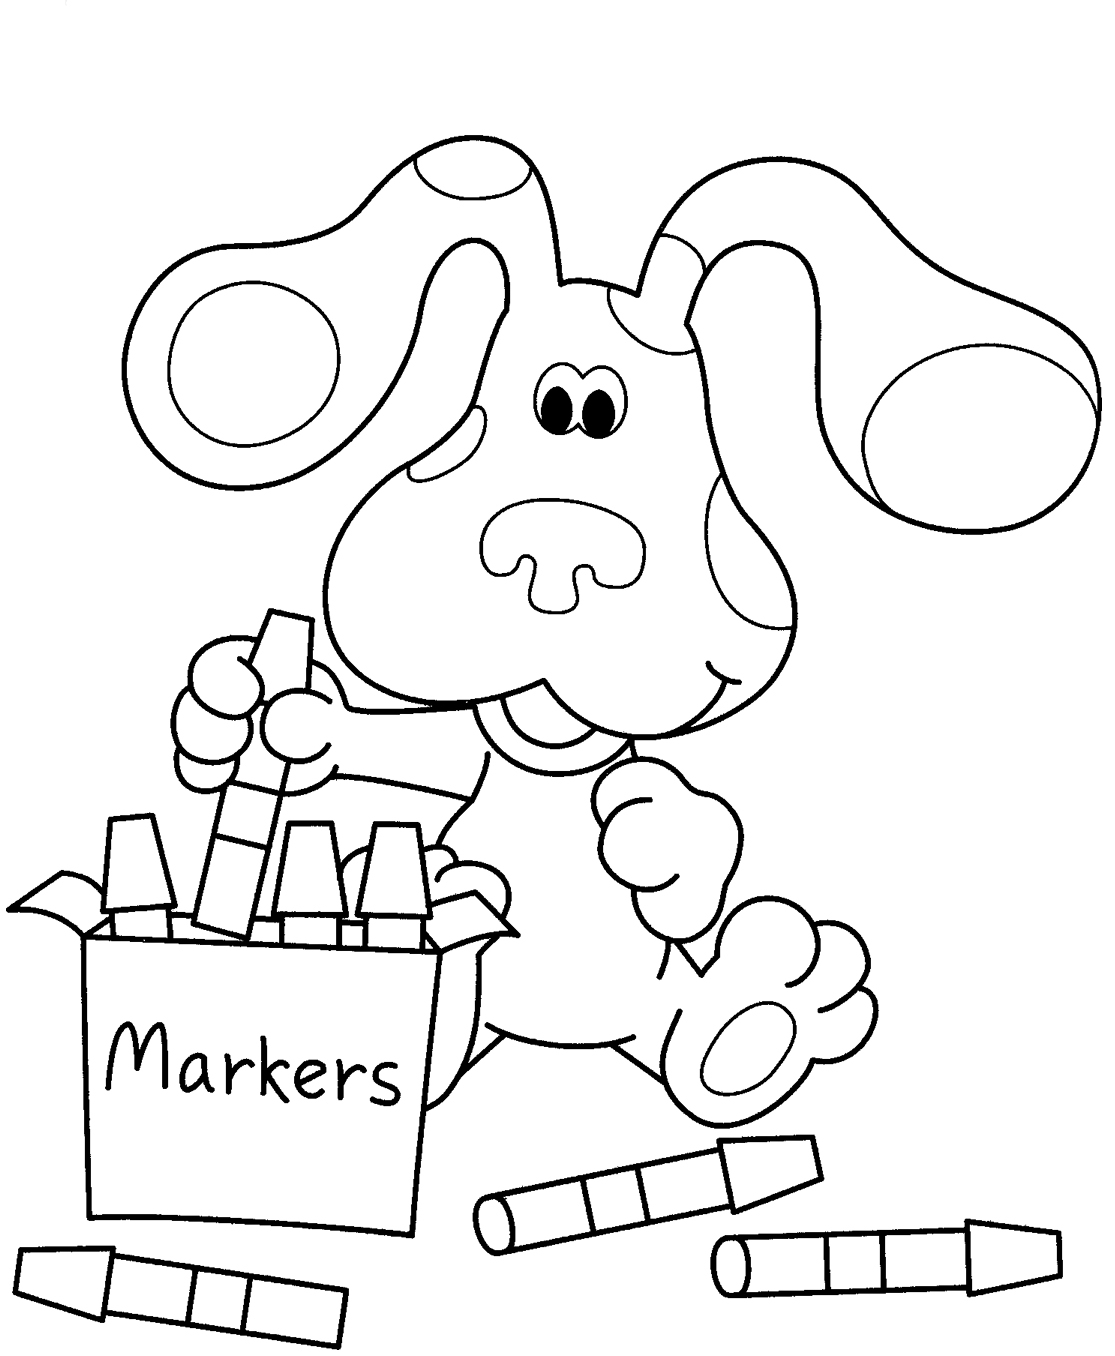 blues clues coloring book free printable blues clues coloring pages for kids coloring book blues clues